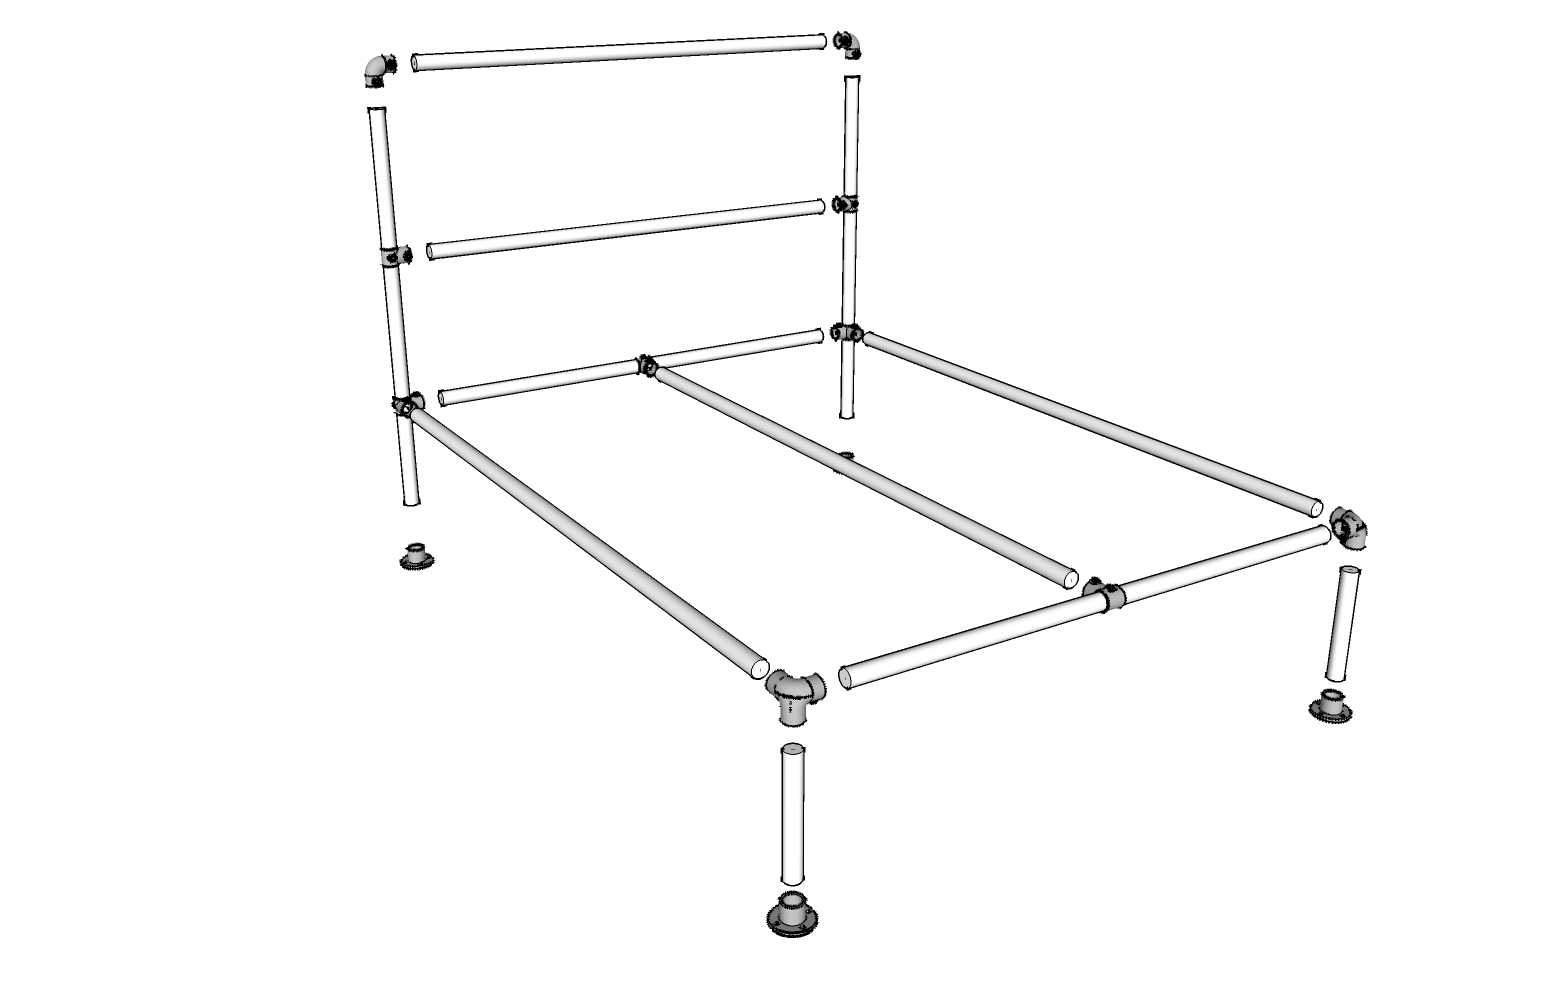 Manhattan Bed Frame - Pipe Bed Frames - Kits | Simplified Building